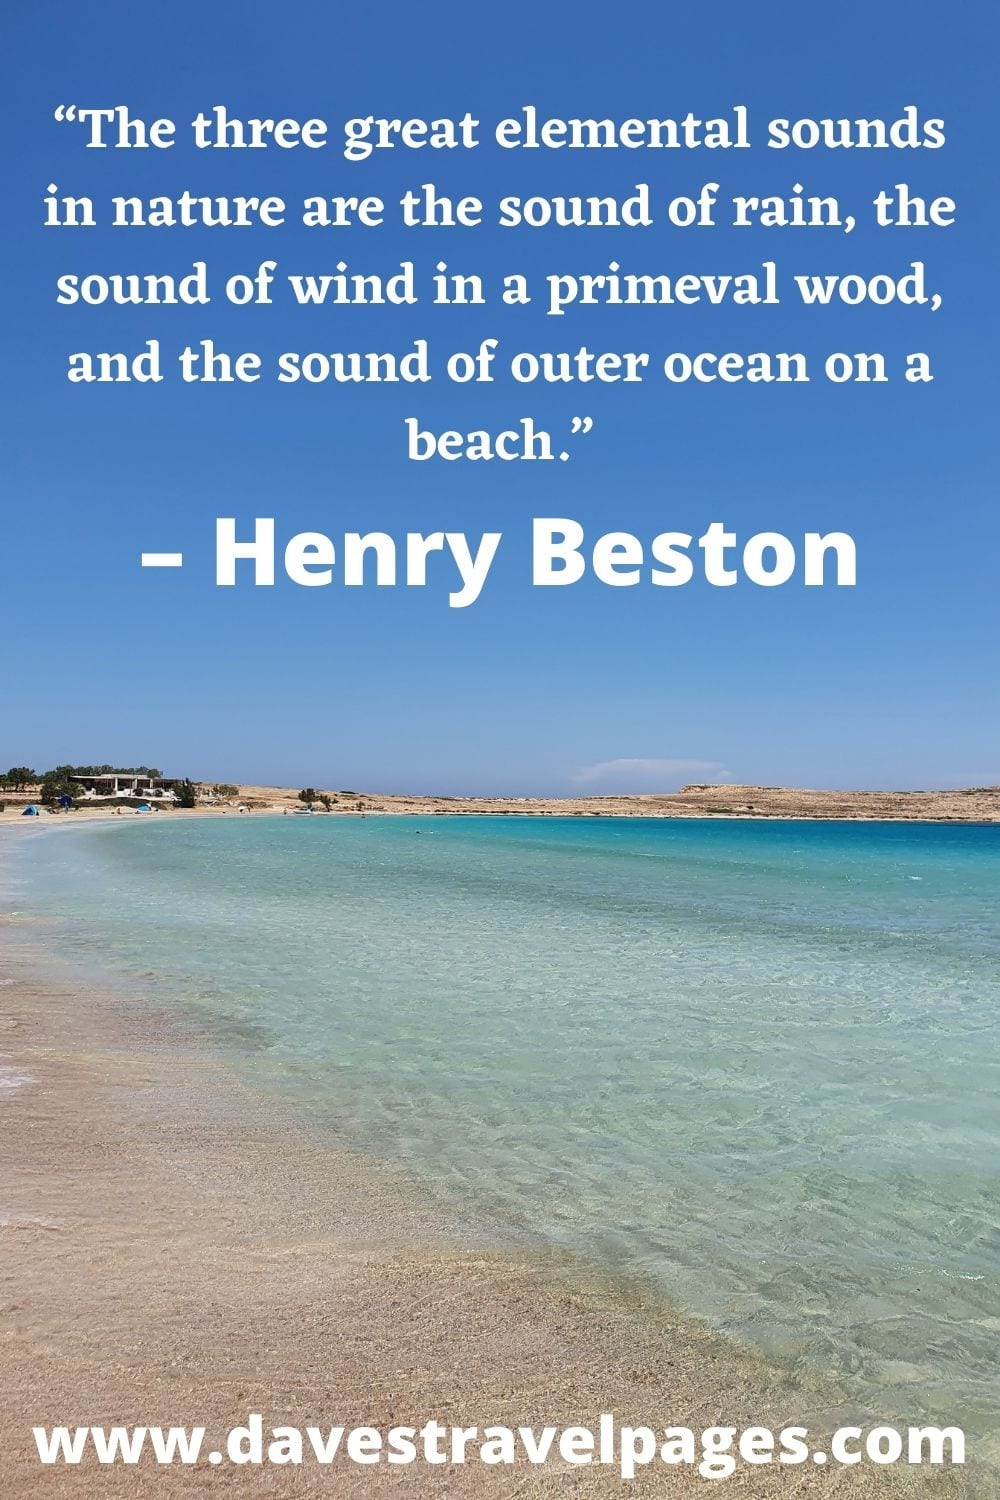 """""""The three great elemental sounds in nature are the sound of rain, the sound of wind in a primeval wood, and the sound of outer ocean on a beach."""" – Henry Beston"""